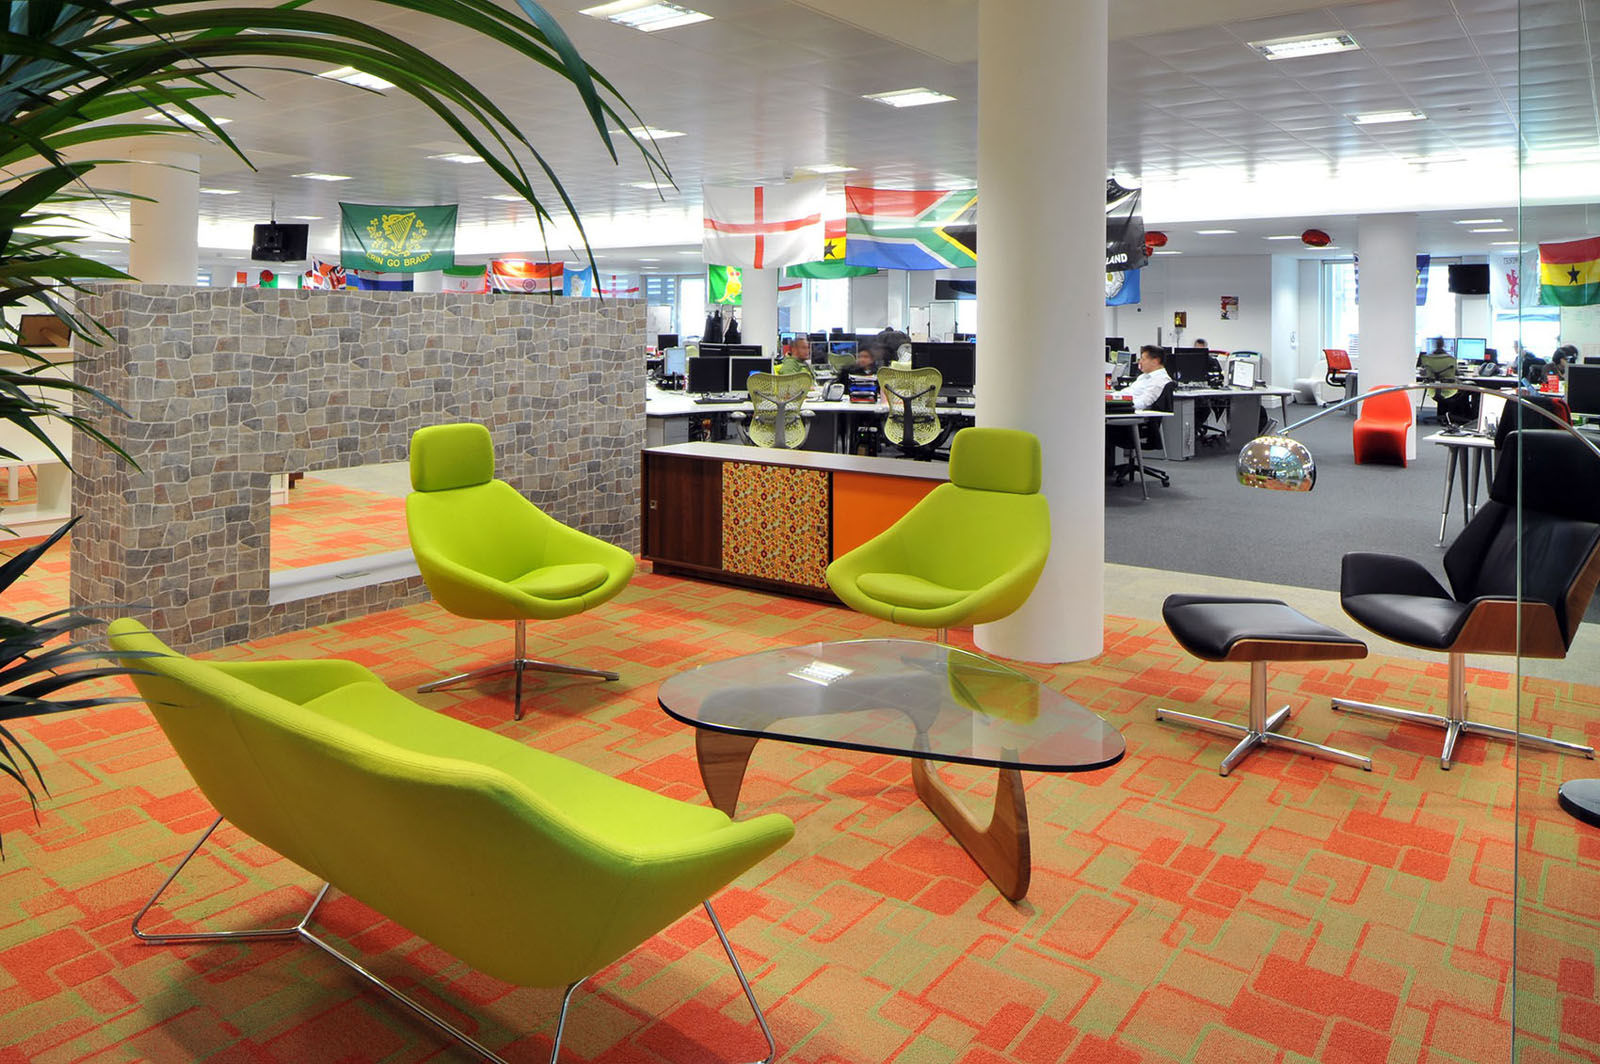 Inspiring british office interior design at rackspace Creative interior ideas